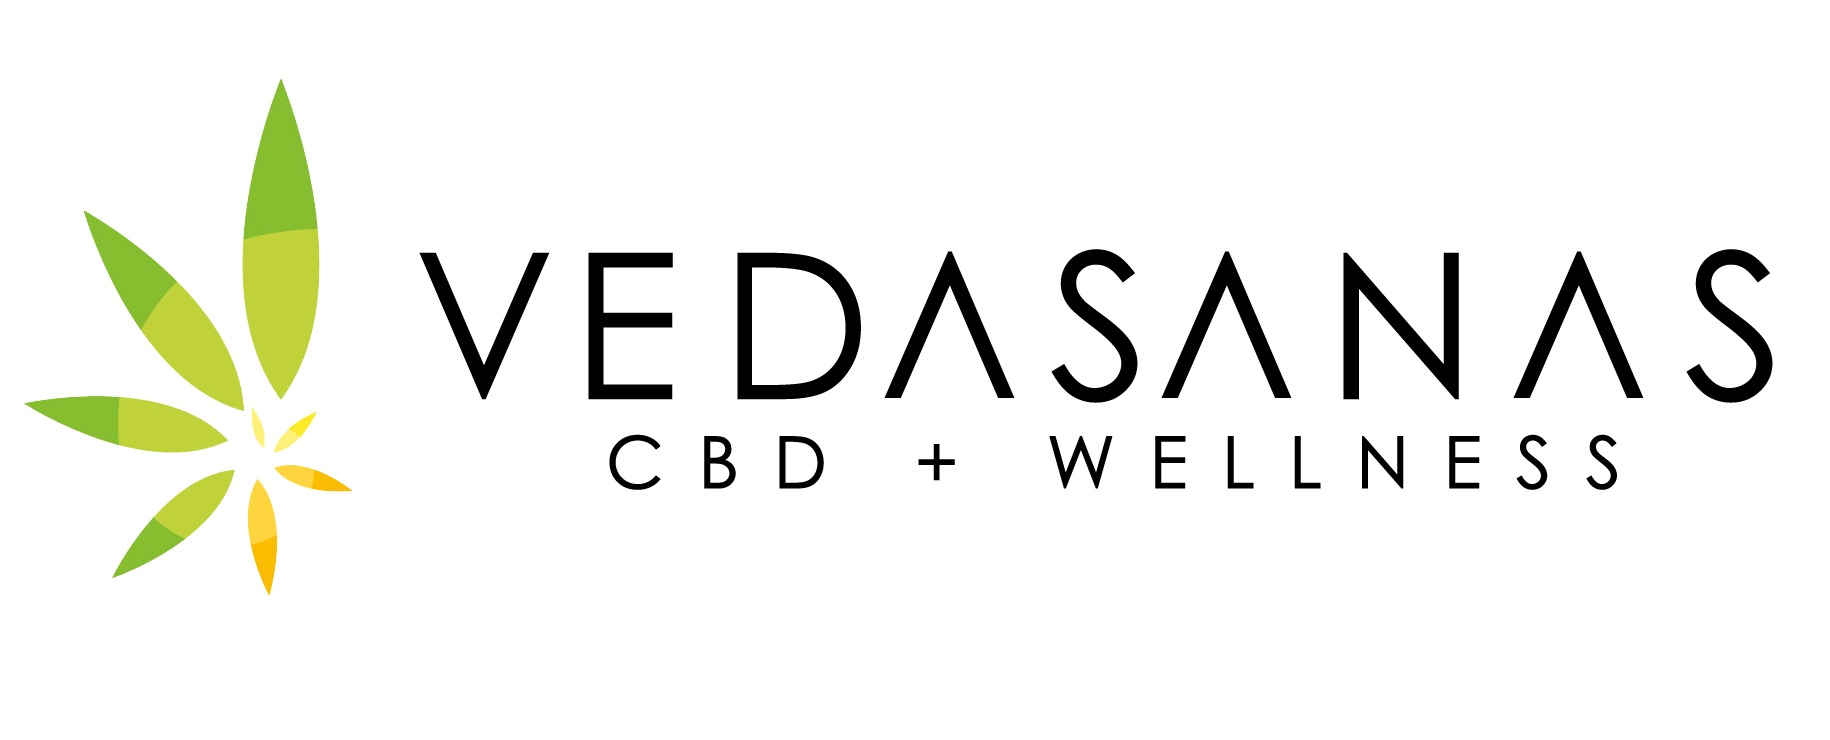 Outbreaks can be stressful Affirms CDC Many Turning to Vedasanas CBD